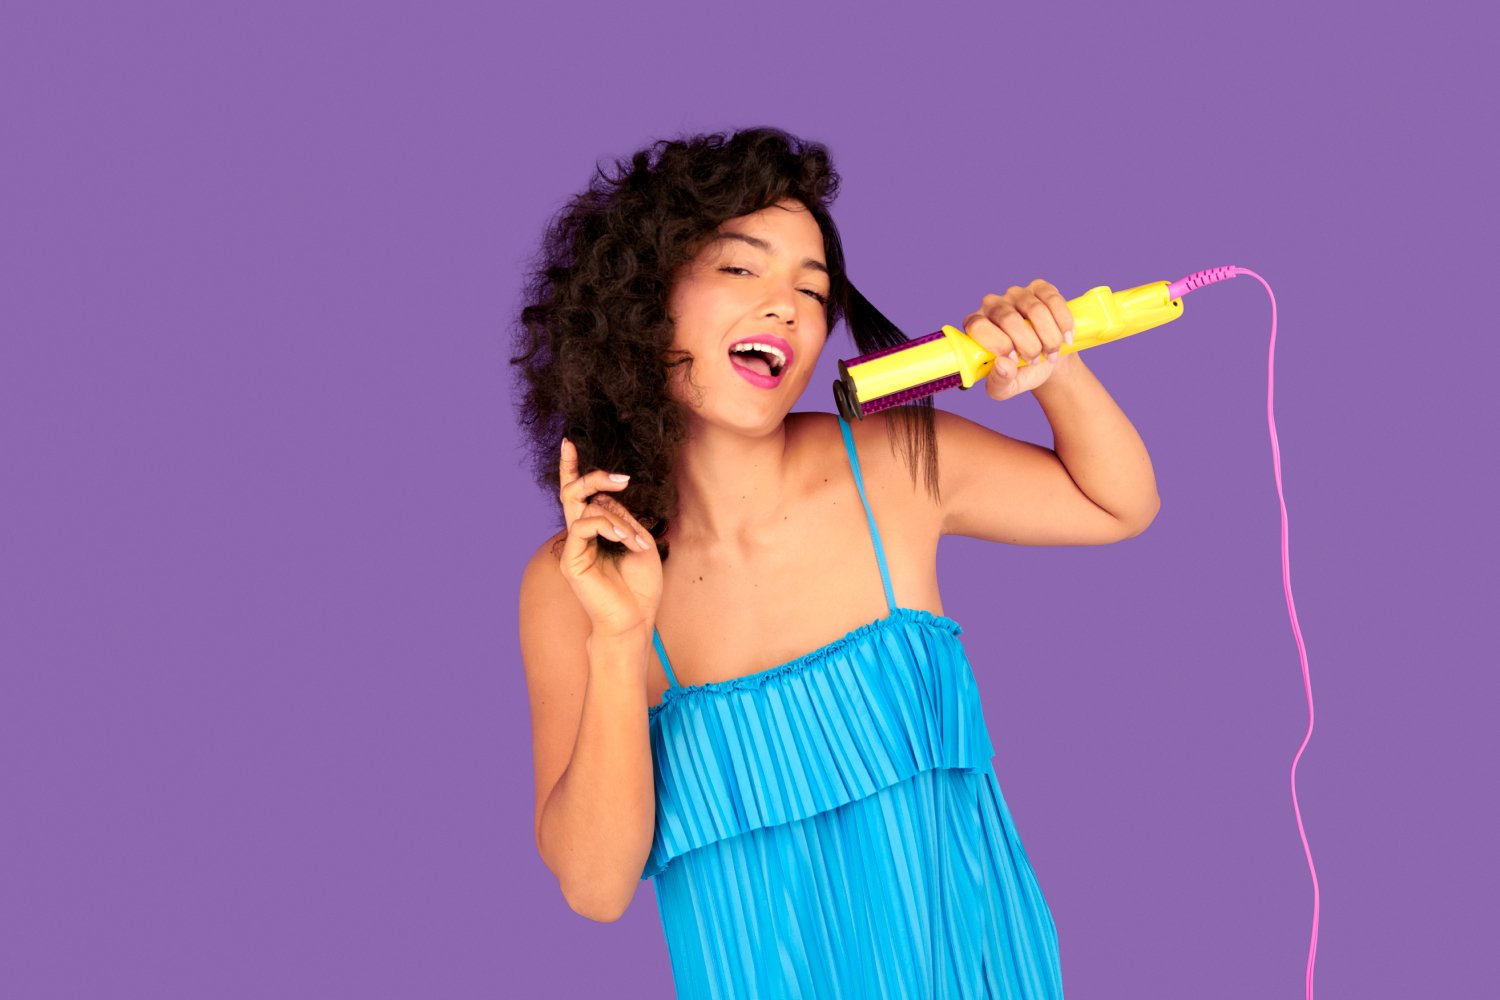 Woman singing into the Styling Iron